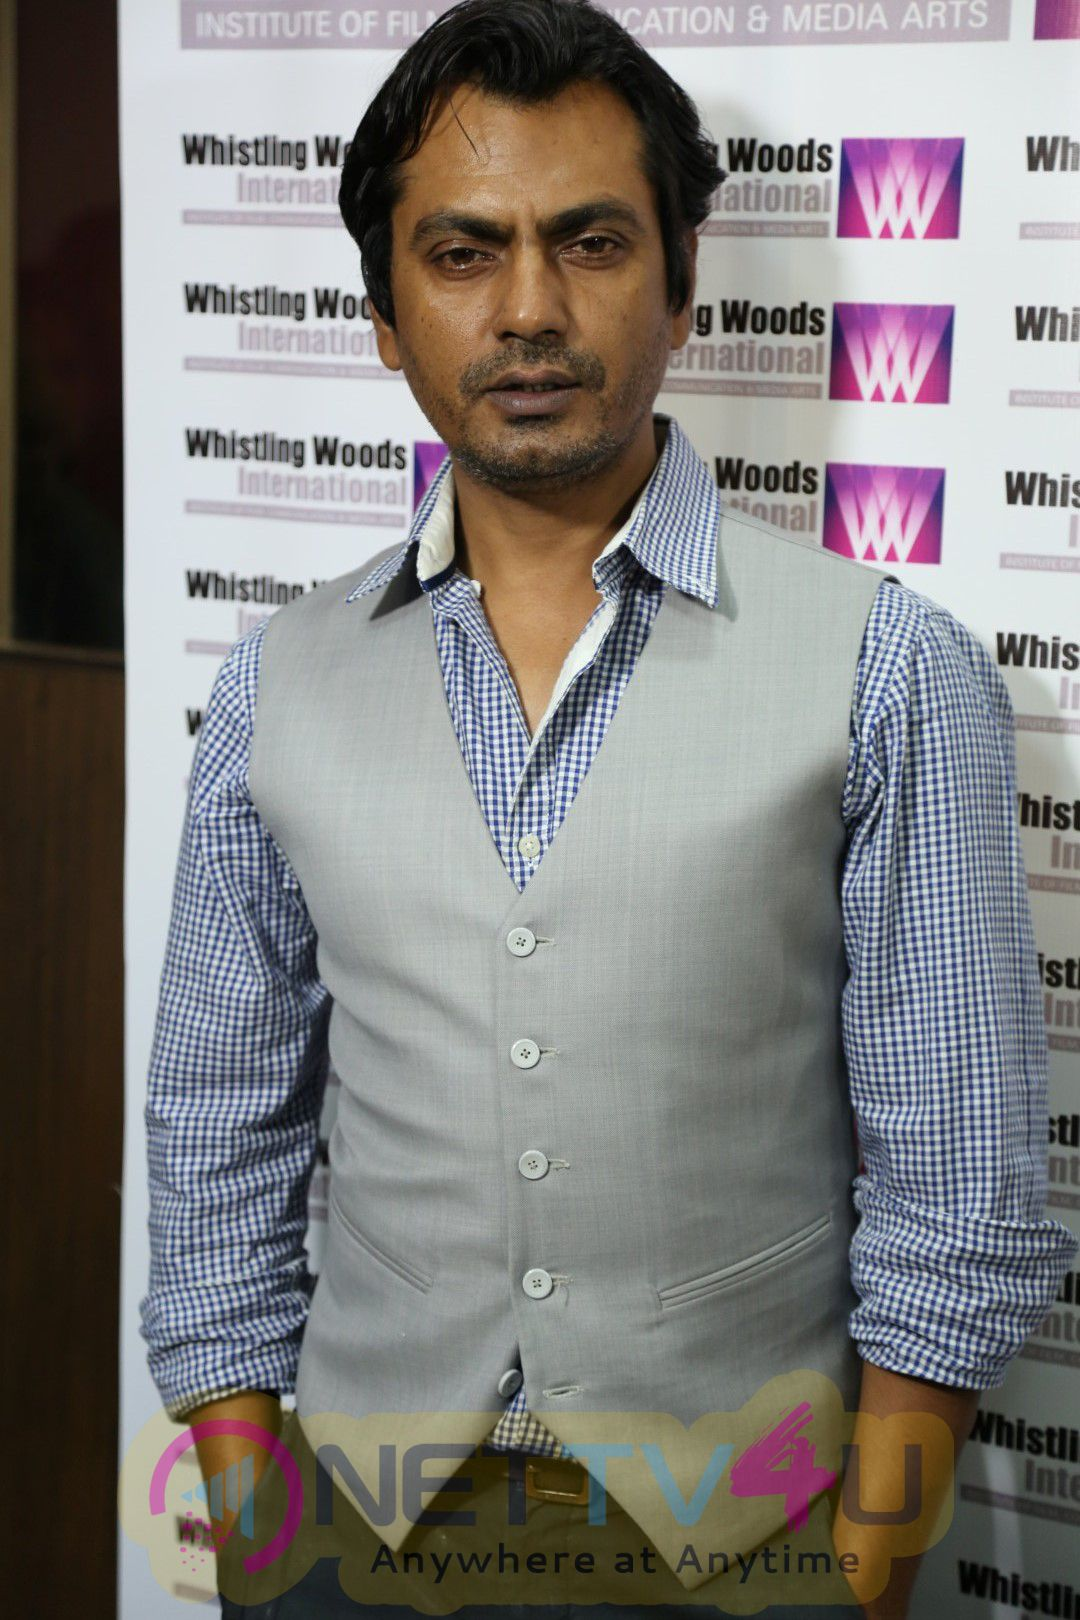 5th Veda Session With Nawazuddin Siddiqui At Whistling Woods International Institute Stills